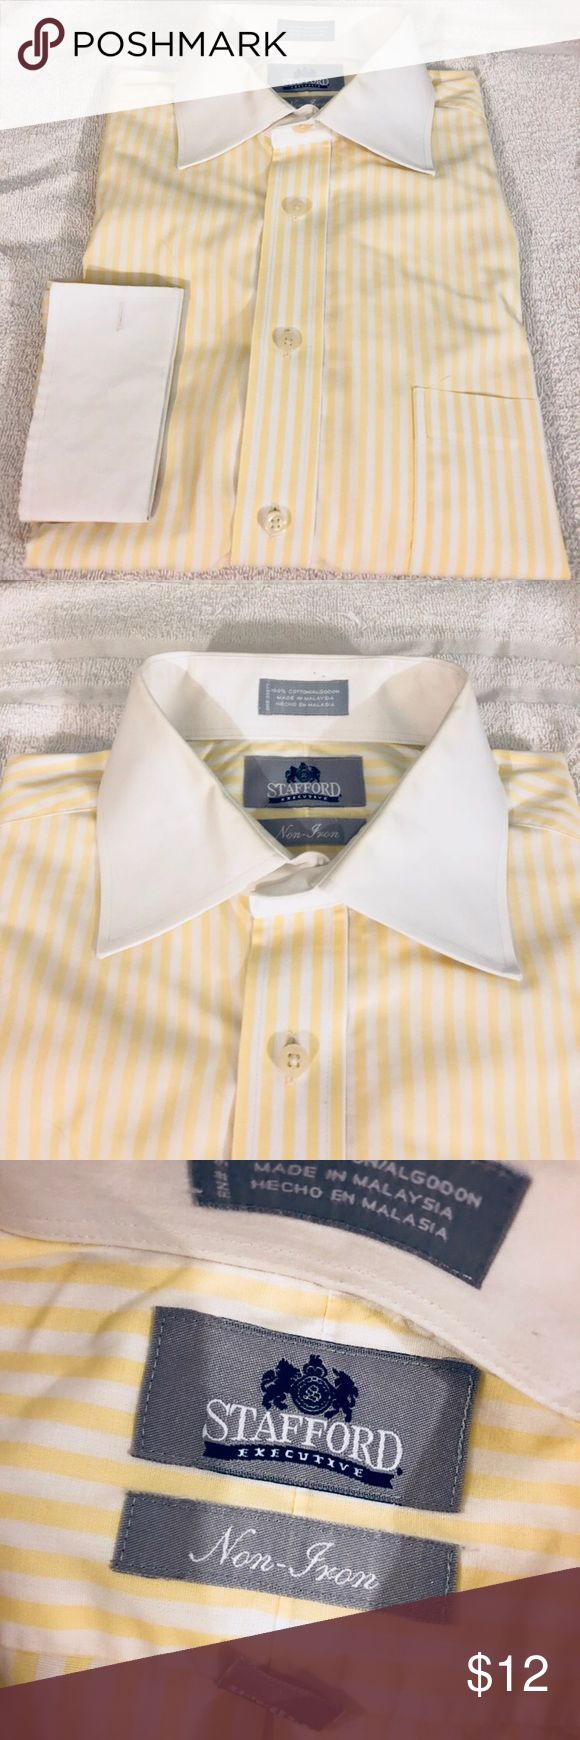 Stafford Yellow Stripe French Cuff Shirt 16 32/33 Stafford Executive Yellow and White Stripe White Collar French Cuff Dress Shirt size 16 32/33! Great condition!  Please make reasonable offers and bundle! Ask questions :) Stafford Shirts Dress Shirts